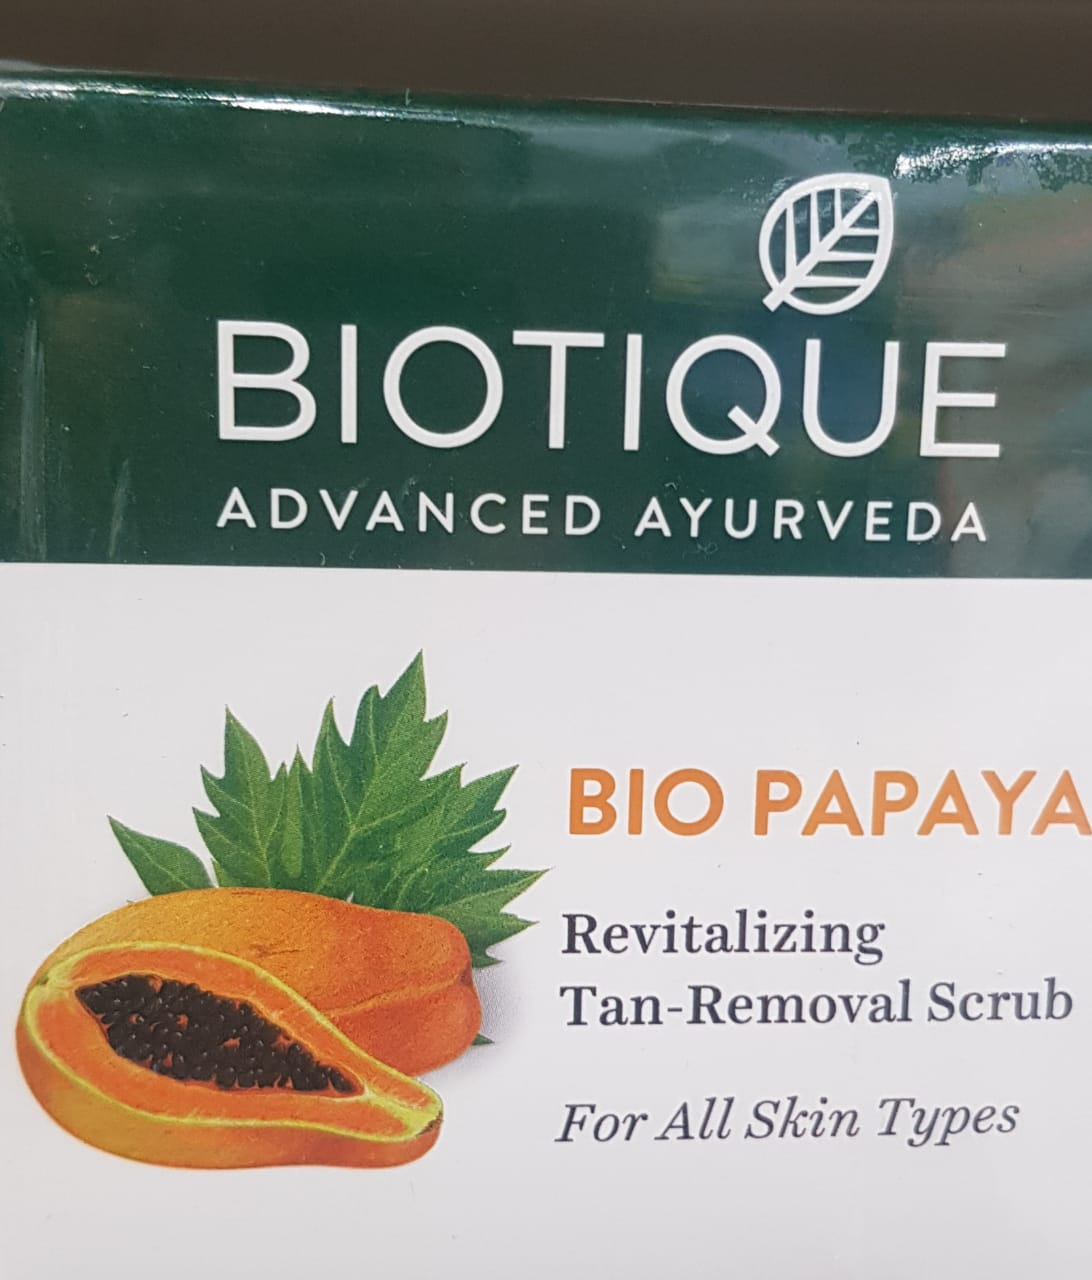 Biotique Bio Papaya Revitalizing Tan Removal Scrub-A good one-By avyuktha